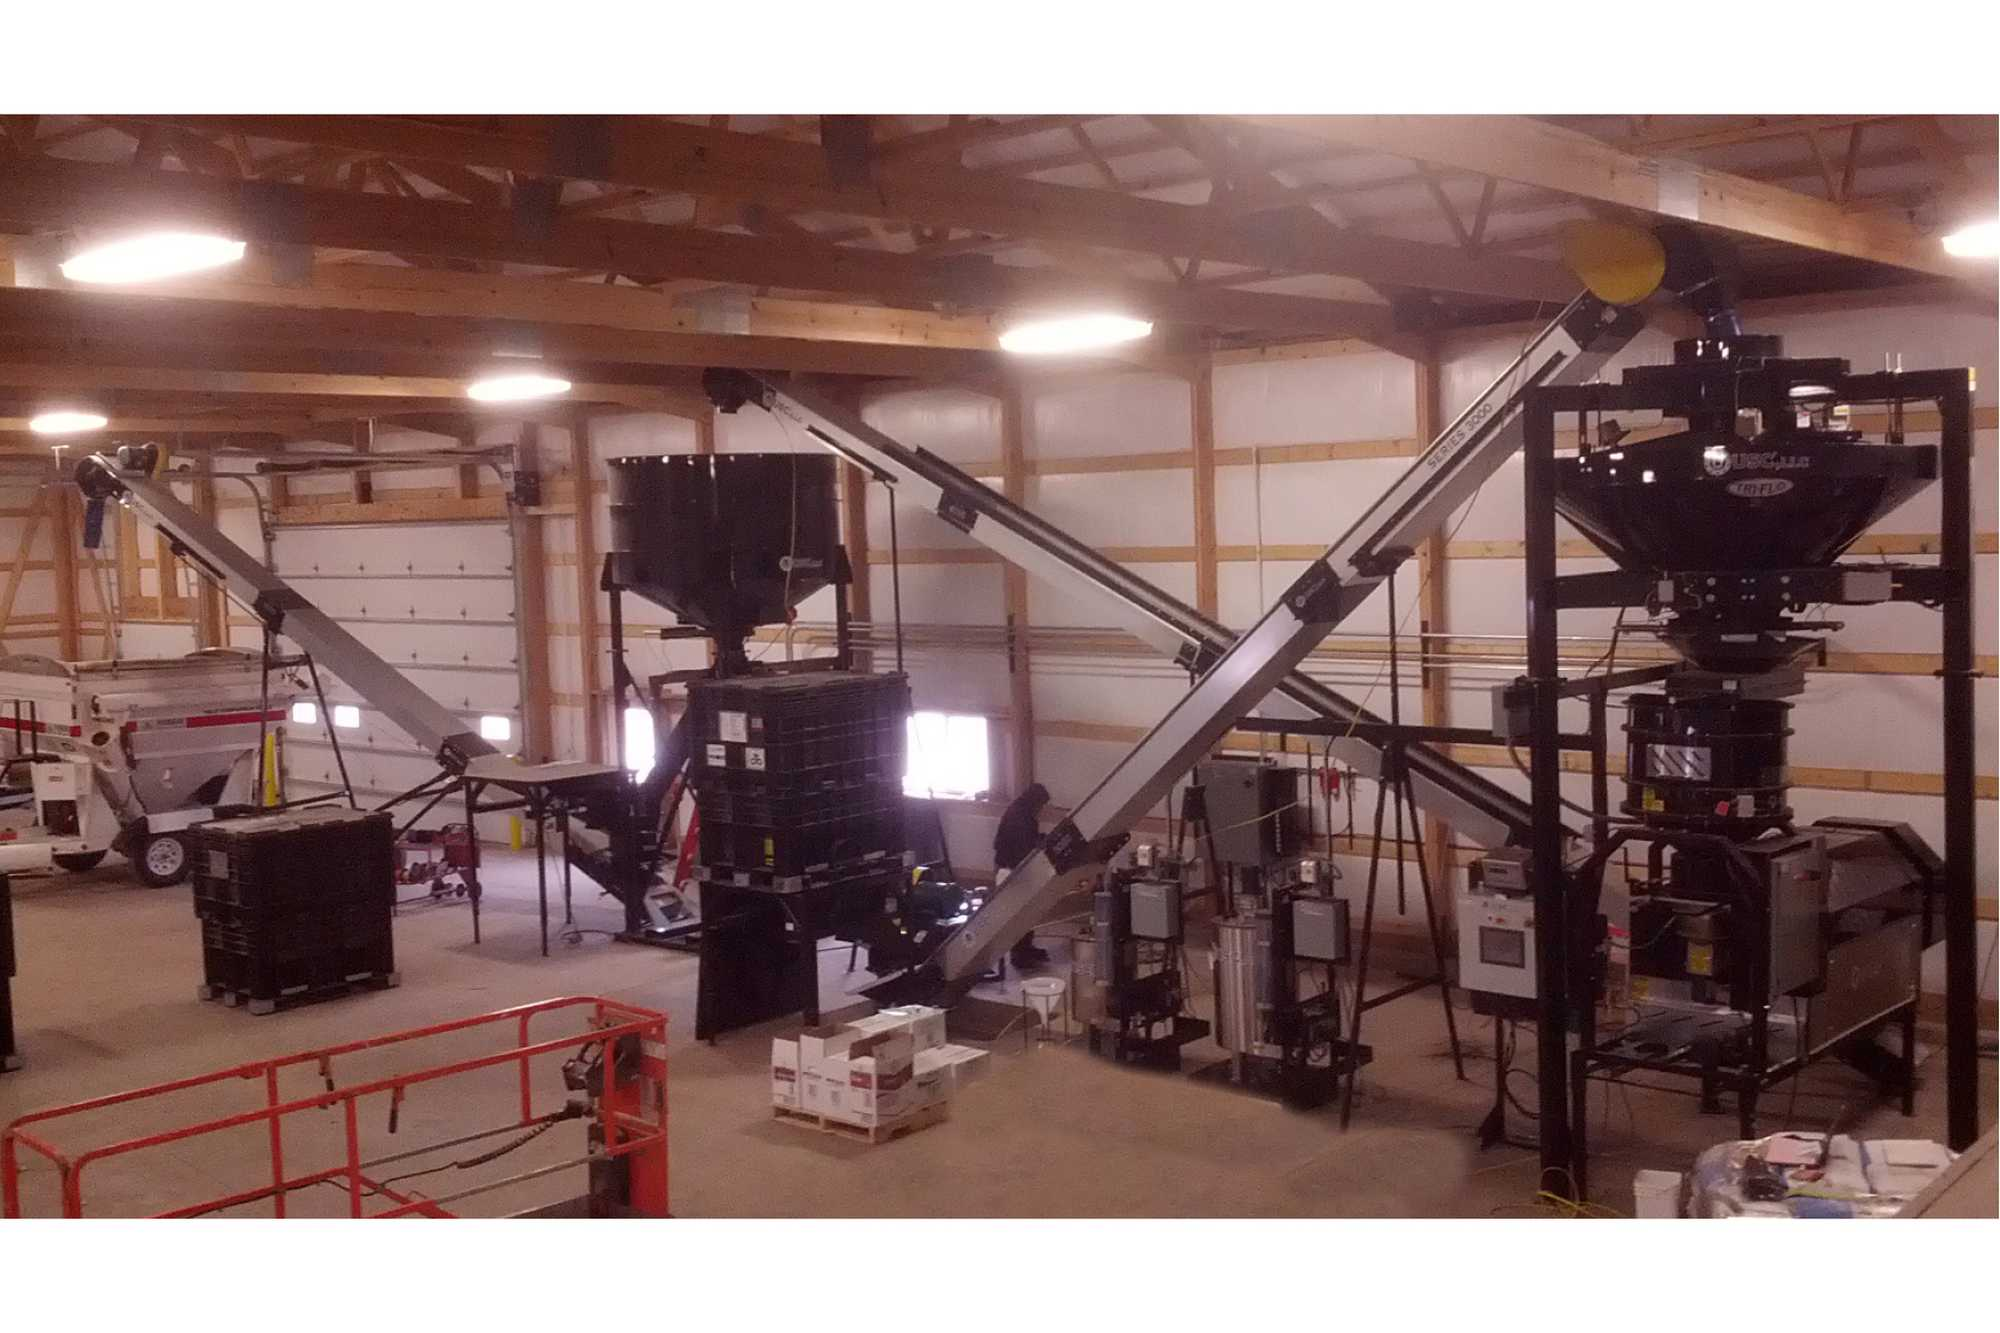 Gumz Seed Service's USC seed treating equipment. This versatile set-up allows the facility to pull seed in from outdoor bins as well as boxes for treating. The treated seed can be packaged in tenders, boxes, bags, or whatever the customer wants.